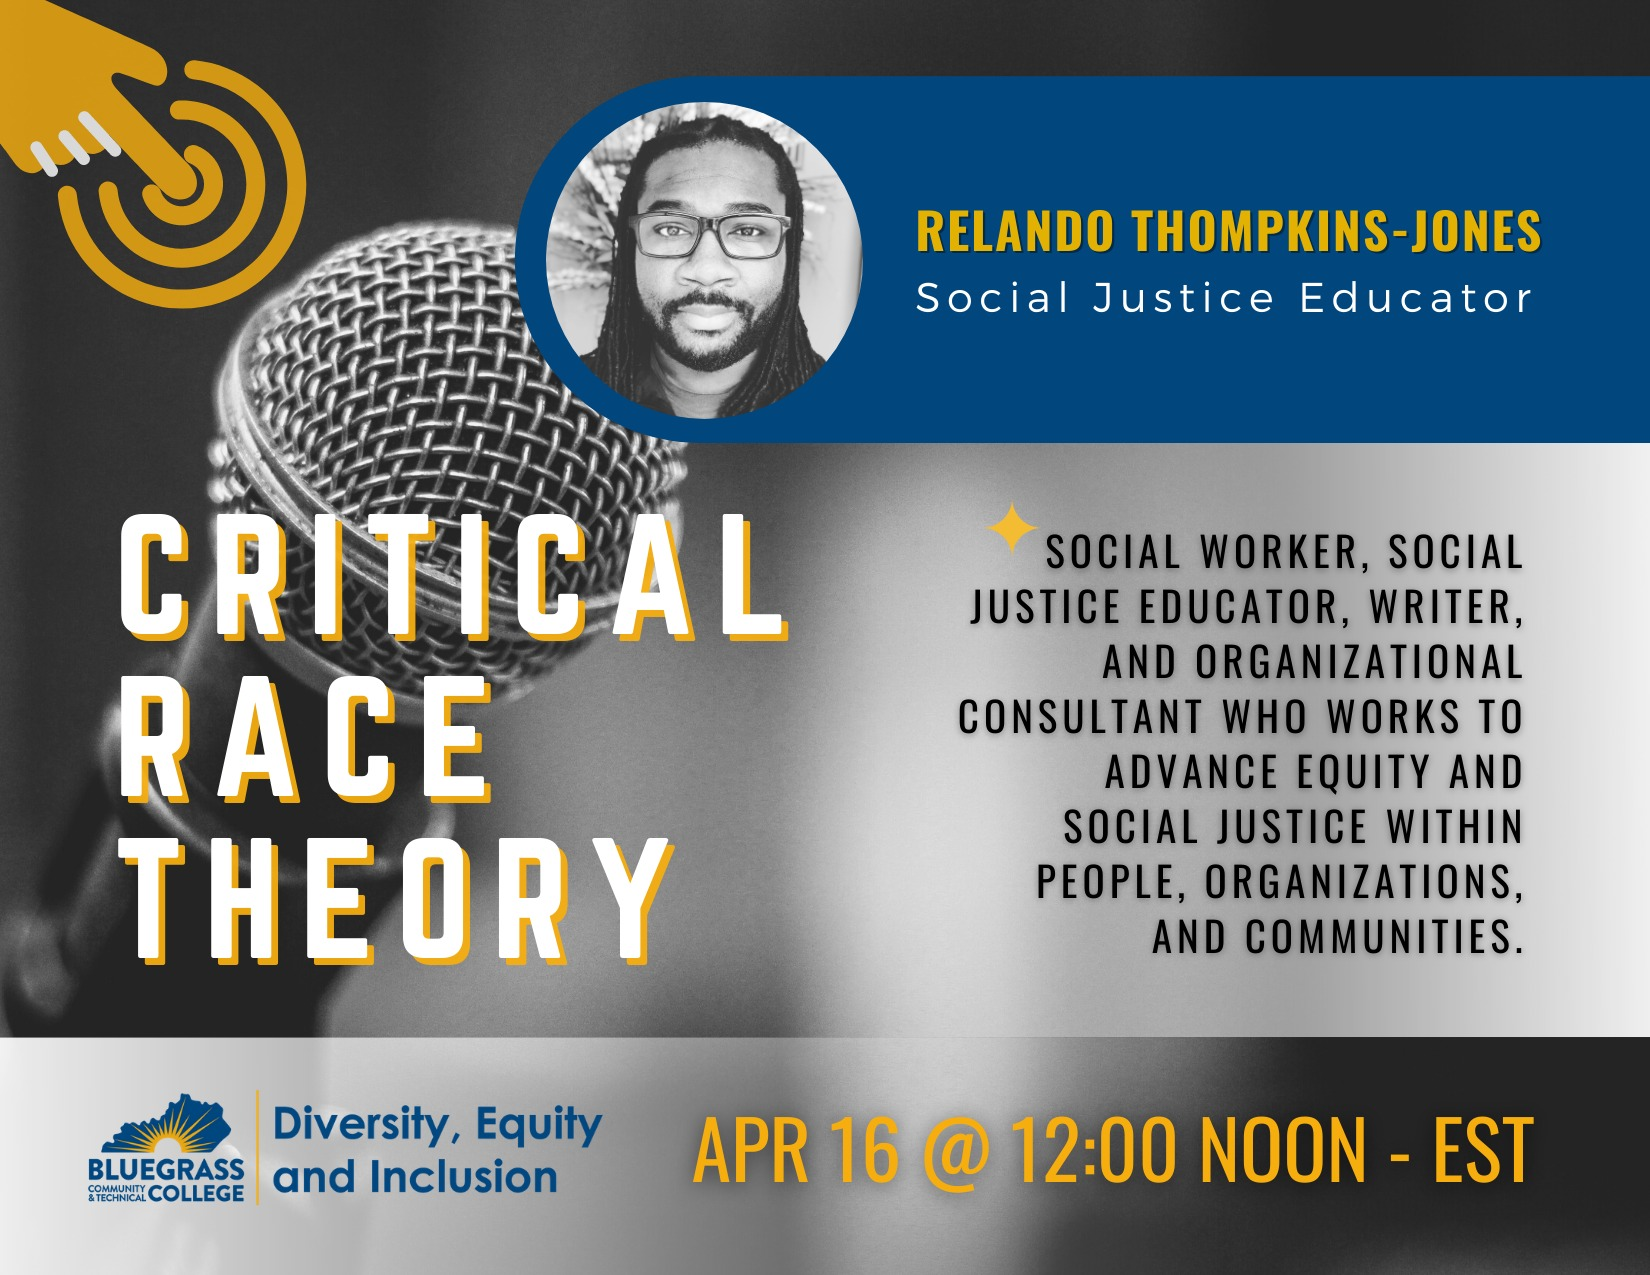 Speaking on Critical Race Theory